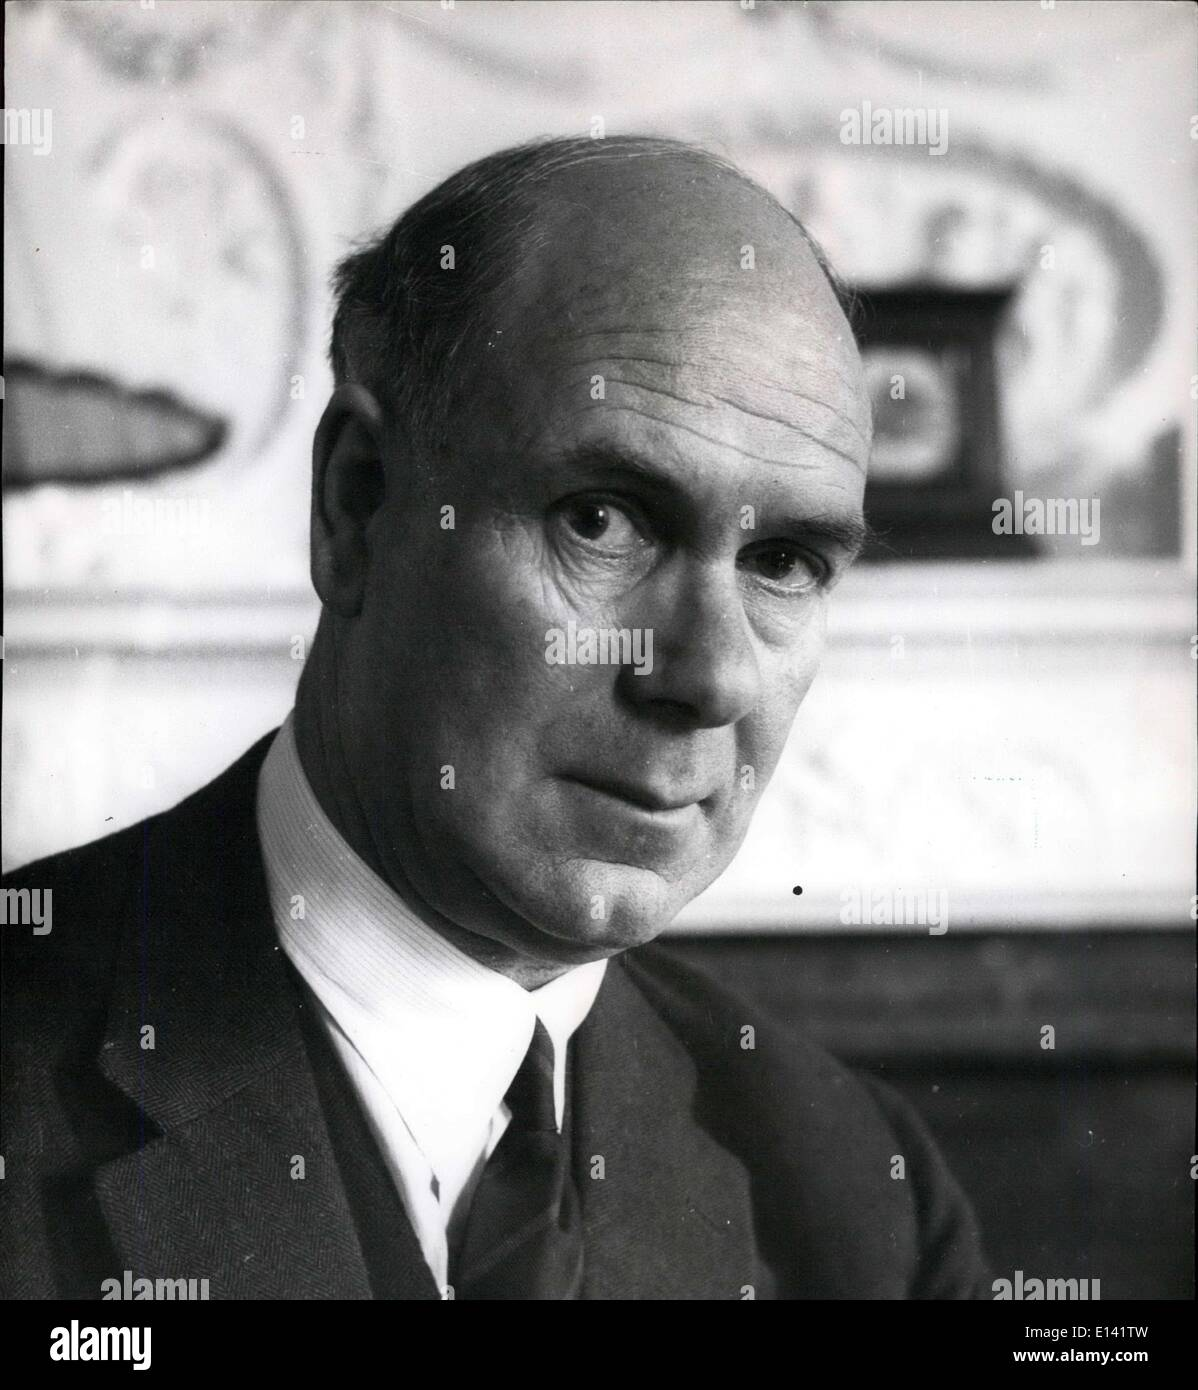 Mar. 31, 2012 - Headmaster of Gordonstoun F.R.G. Chew M.A. who was on the staff of Salem and came to Gordonstoun when Dr. Hahn found it. He became joint headmaster with Mr. Brebston when Dr. Hahn retired in 1953 and sole headmaster since Altyre closed in 1960. - Stock Image